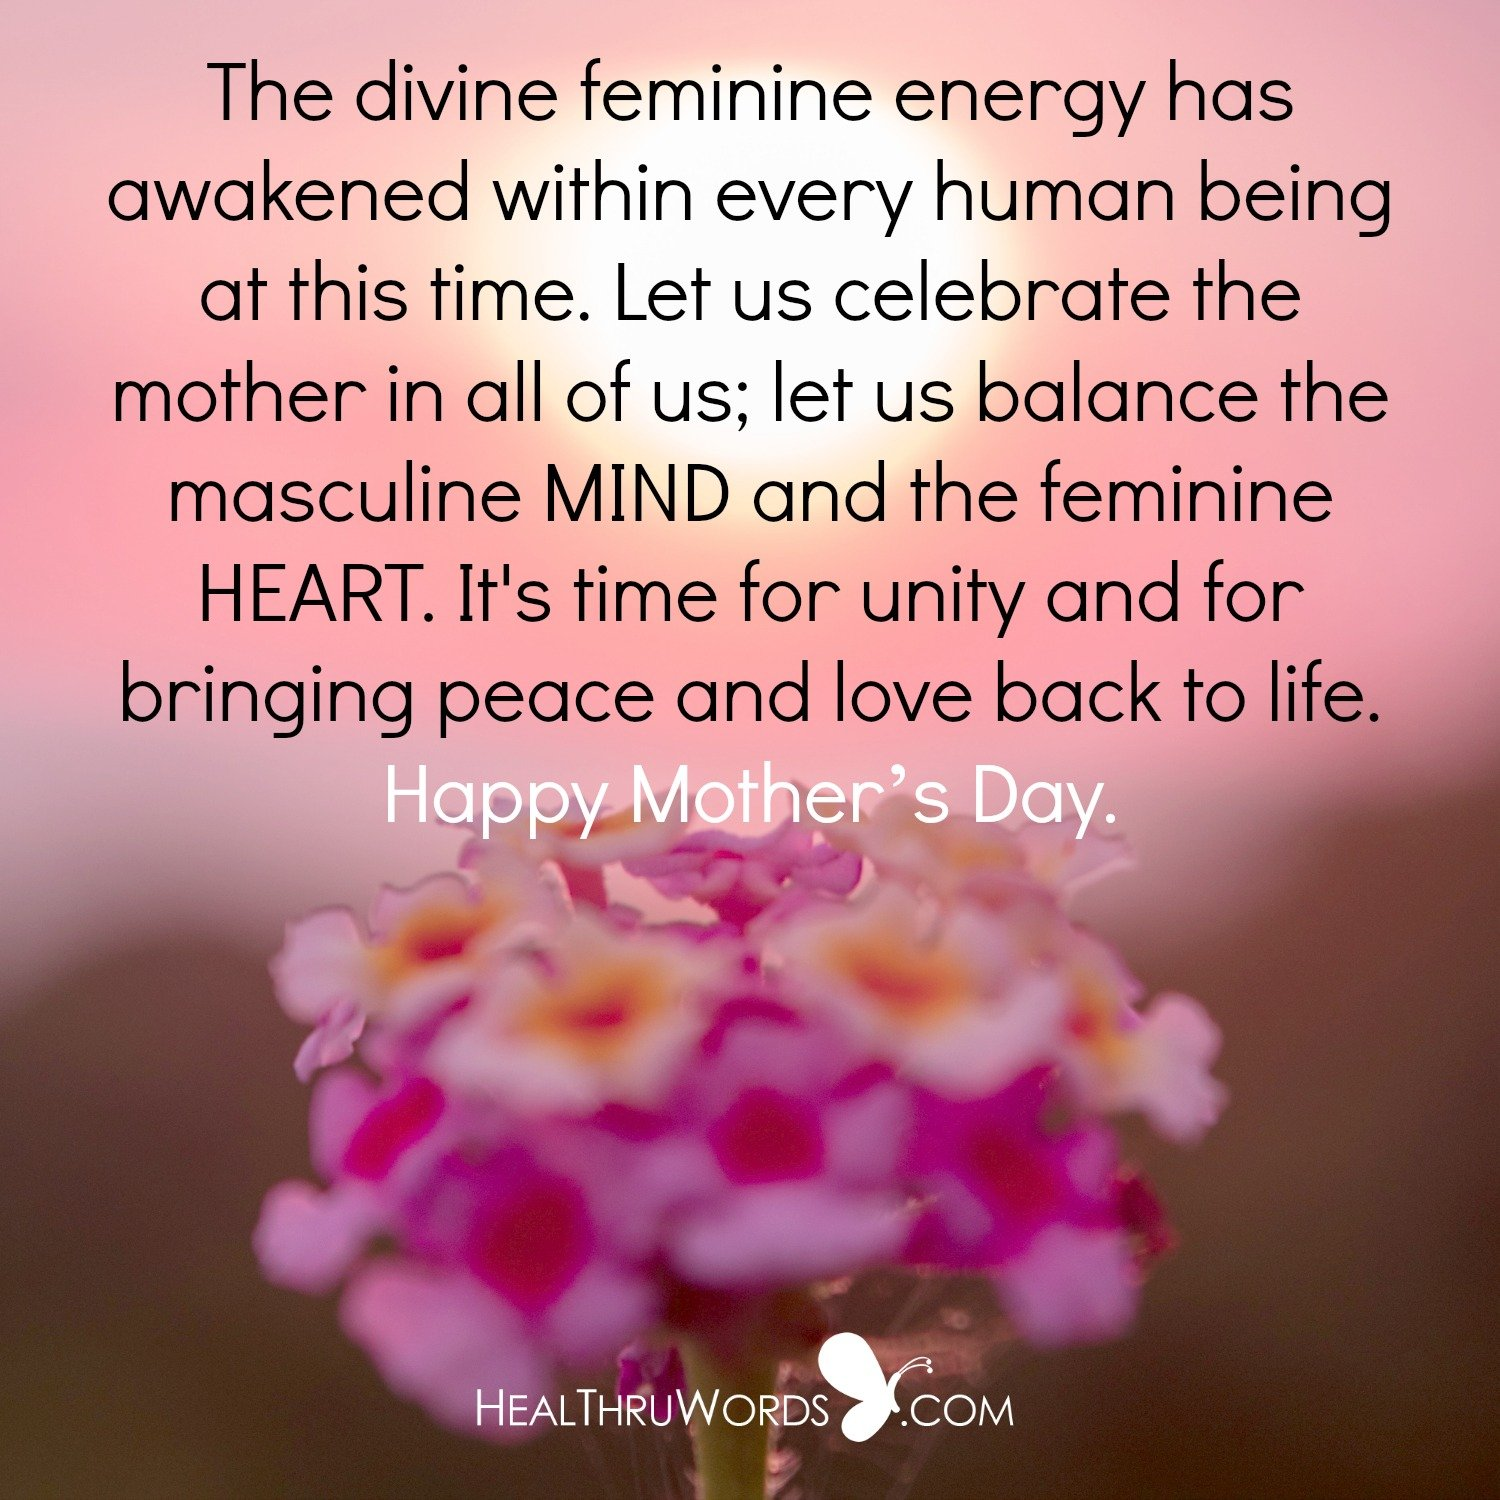 Inspirational Image: The Awakening of the Feminine